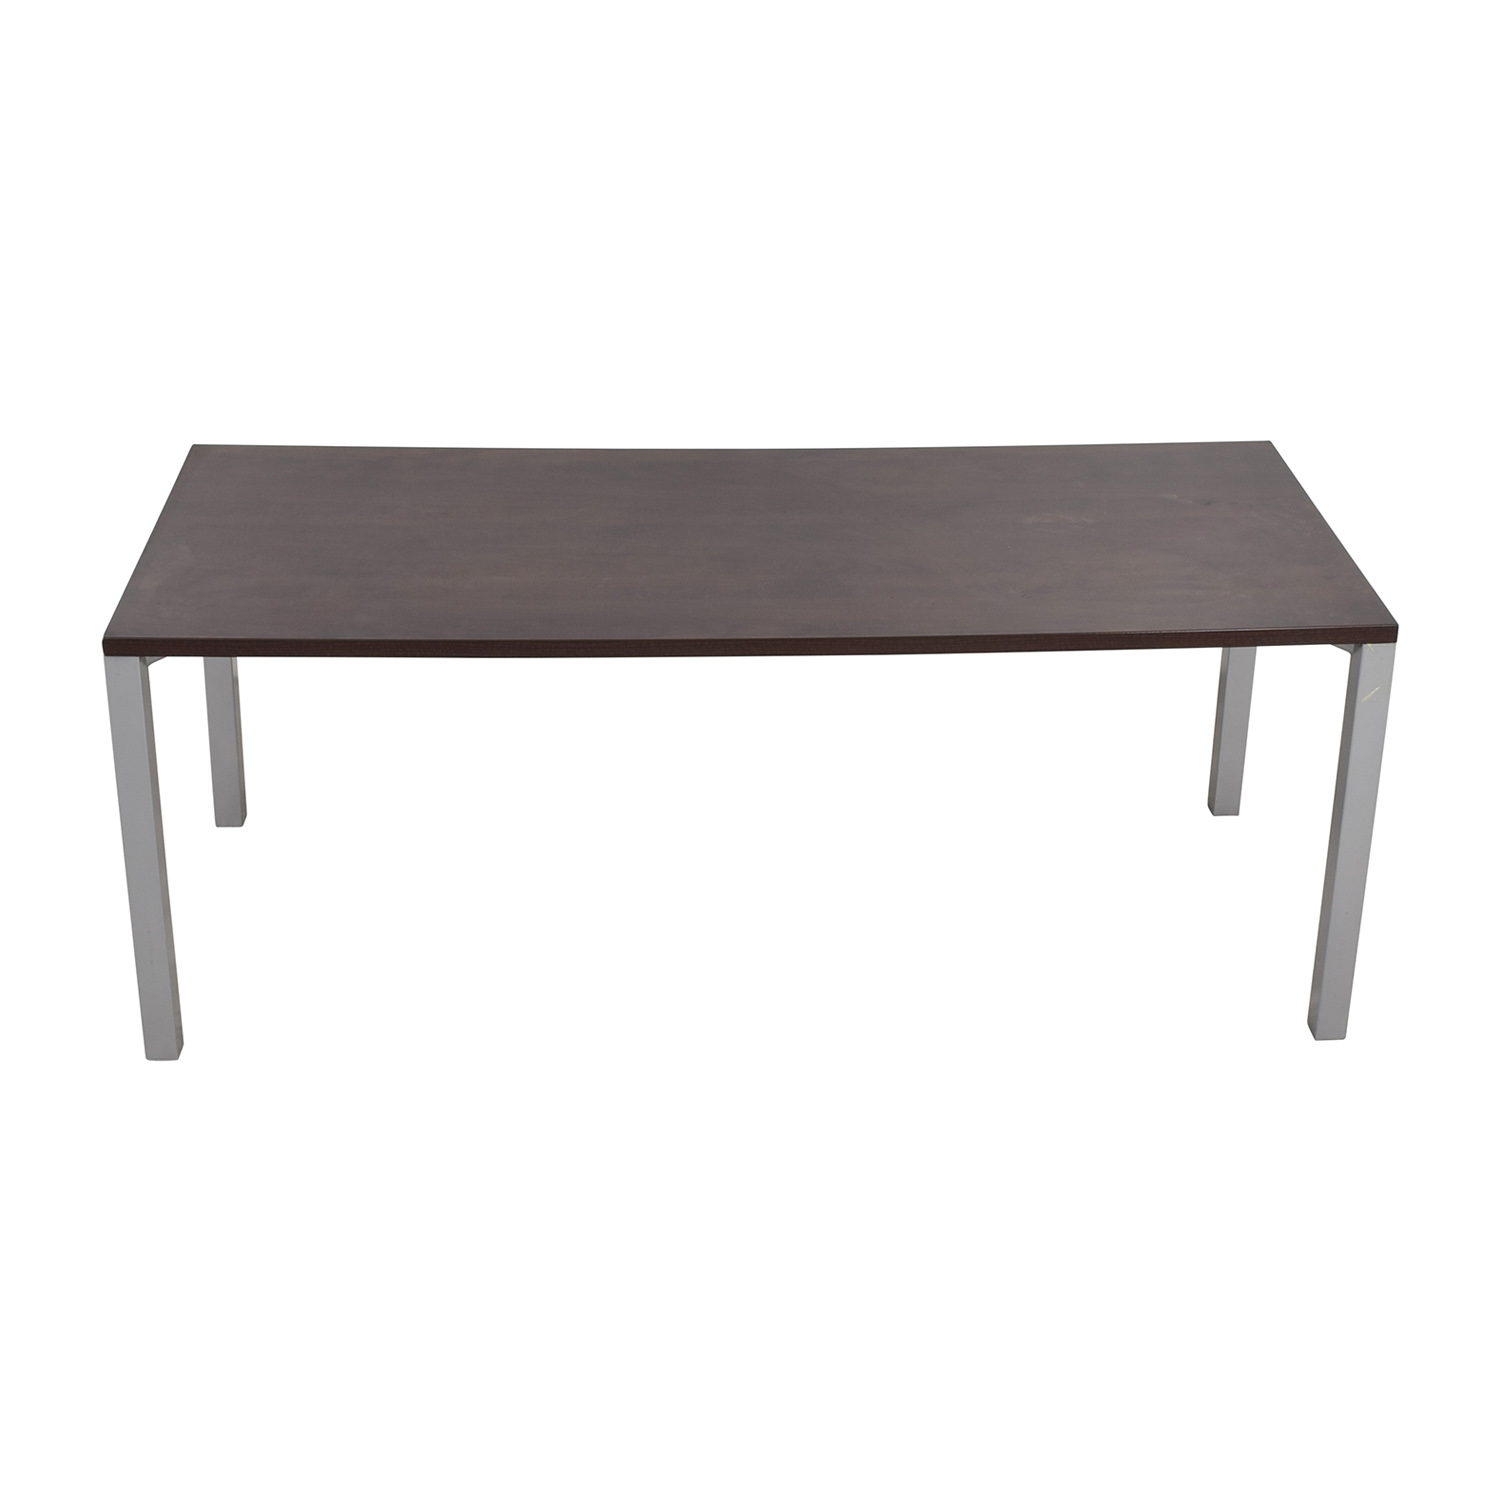 Steelcase Steelcase Currency Martin Desk Brown / Silver